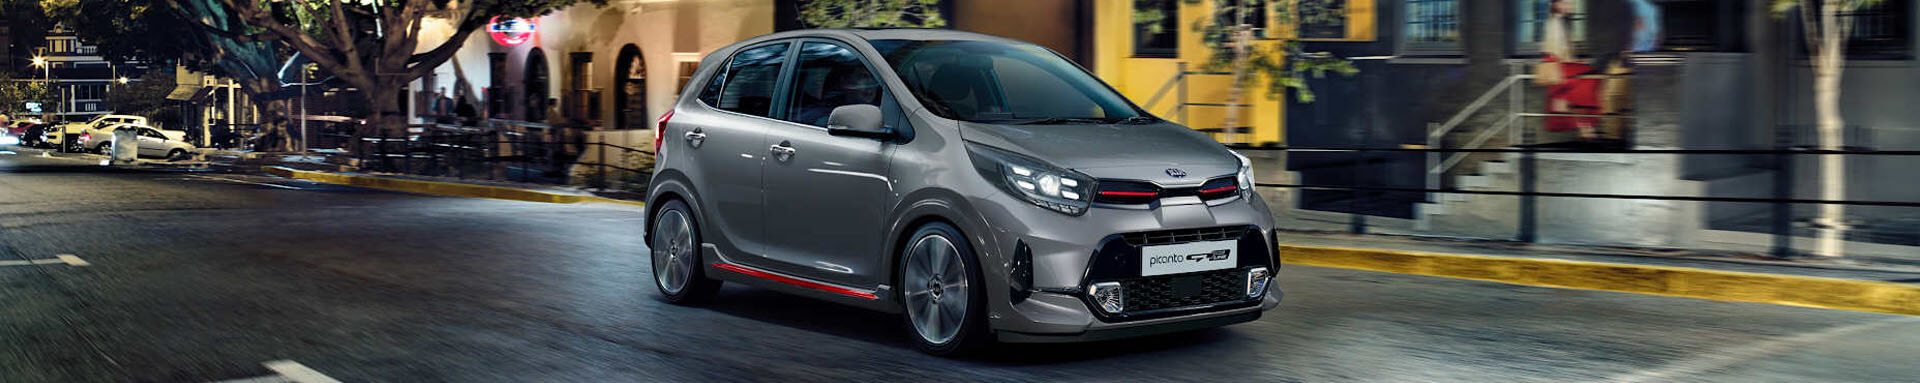 Heartland Kia - Castle Hill Picanto